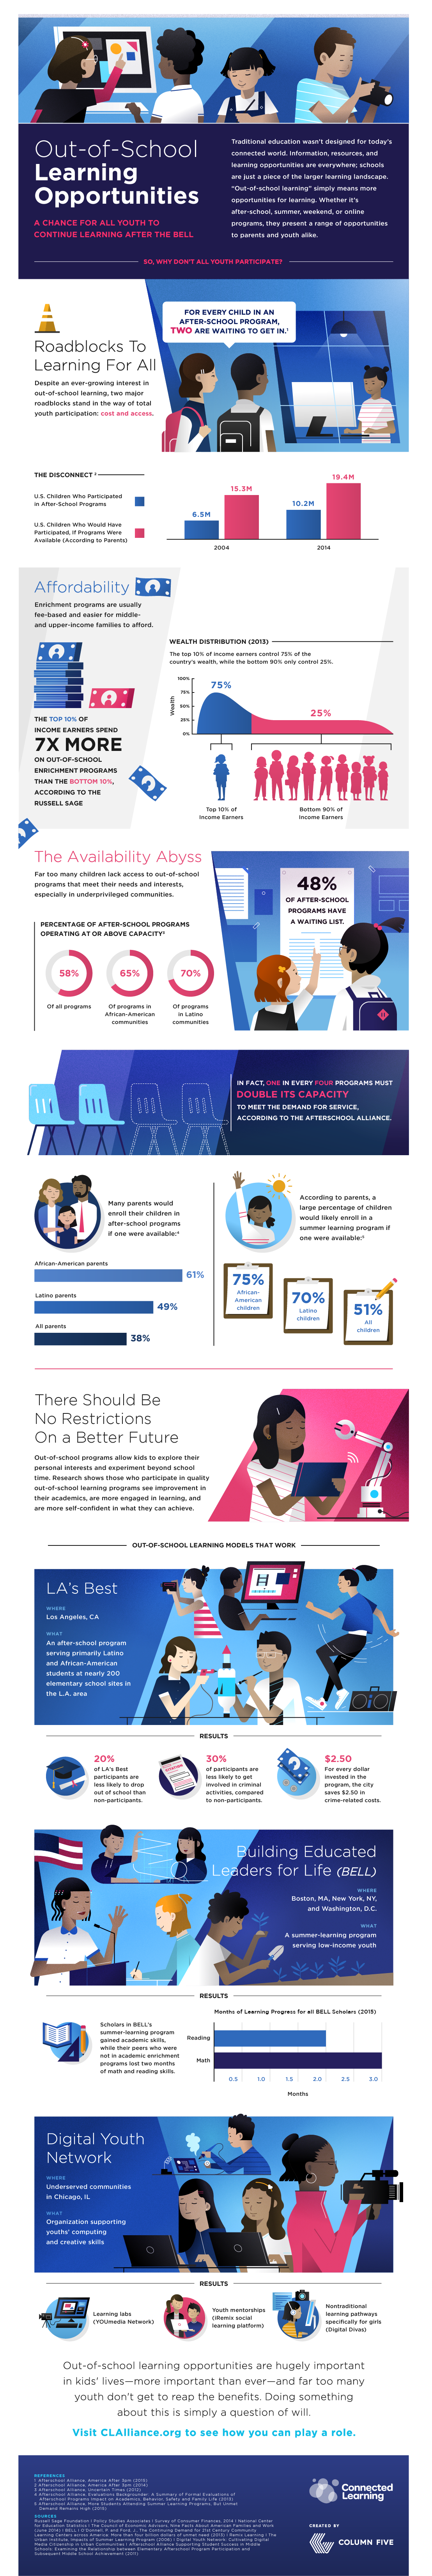 Infographic: Educational equity and out-of-school learning